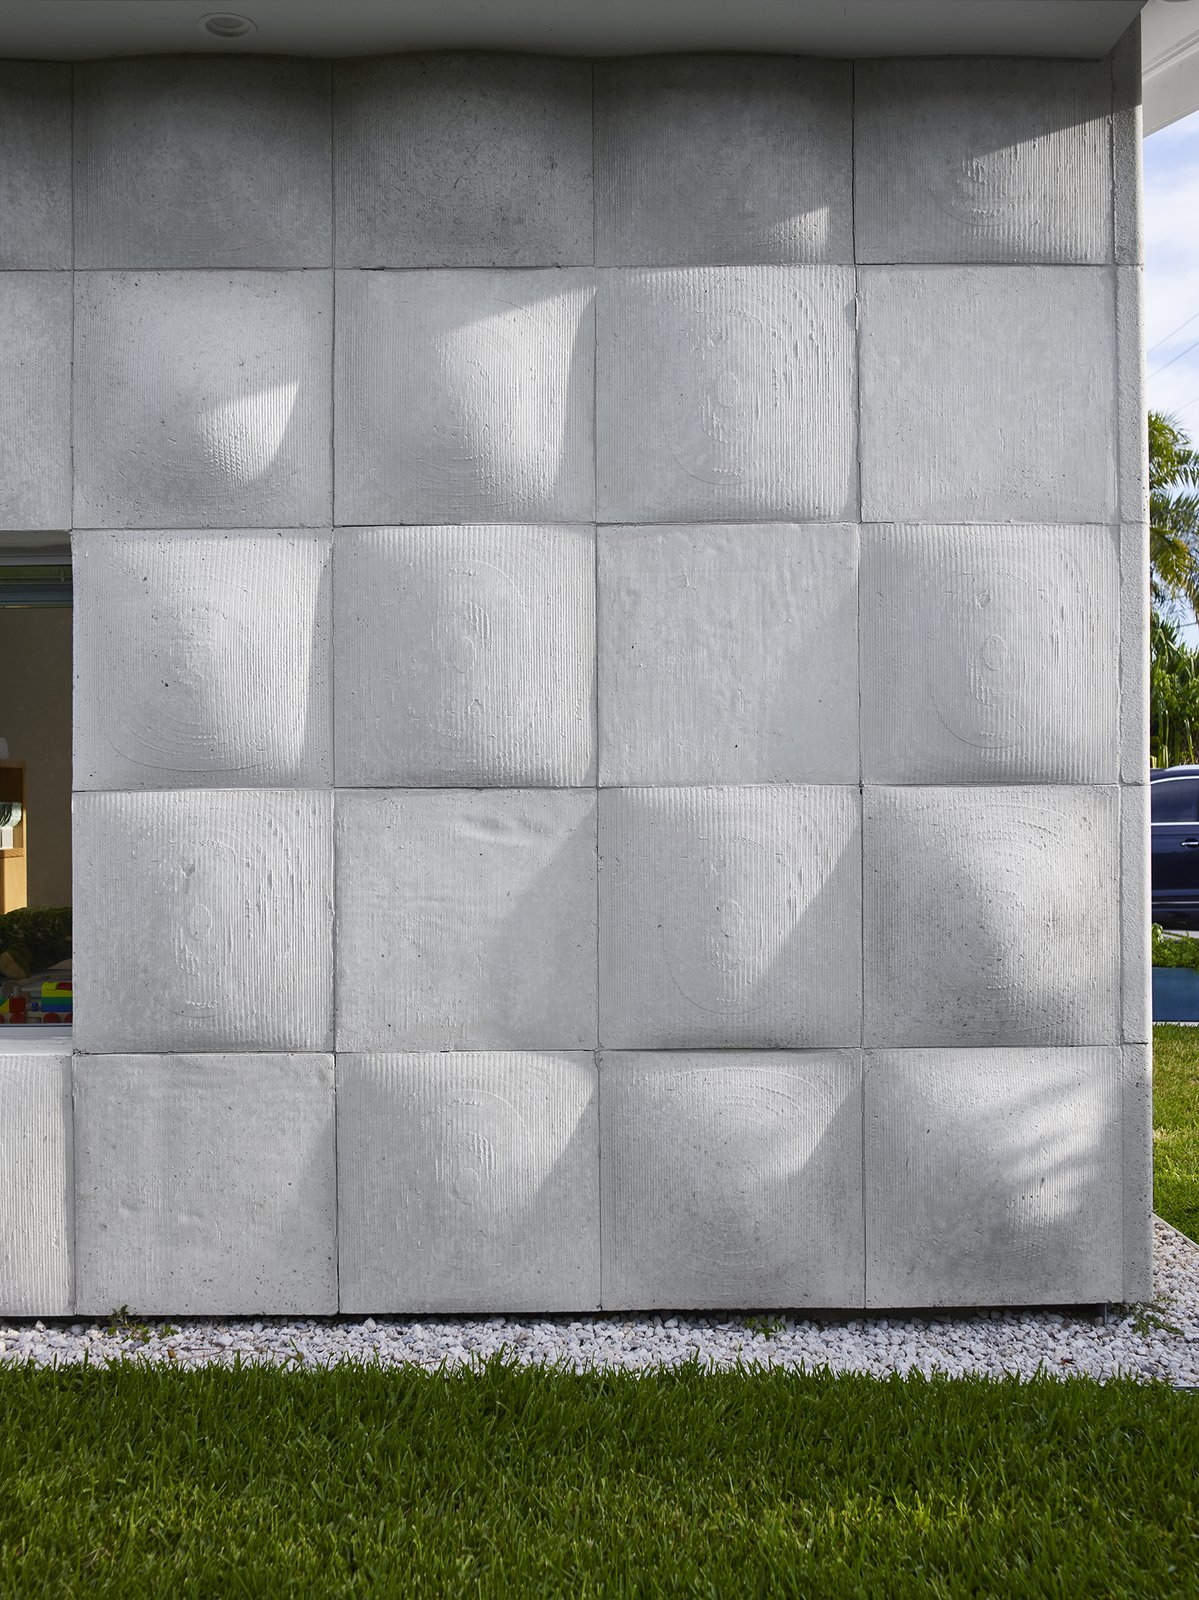 """Outdoor, Side Yard, and Grass """"For the majority of the day, when the sun is high, you almost don't notice the texture on the exterior. It just fades into a flat wash,"""" says designer Nick Gelpi of the undulating wood-based concrete tiles that clad his home in Miami Beach. """"But at moments, the sun hits at a certain angle and really activates the surface."""" - Miami, Florida Dwell Magazine : July / August 2017  Photo 2 of 12 in A Professor and Designer Tests a New Hybrid Material on His Miami Beach Home"""